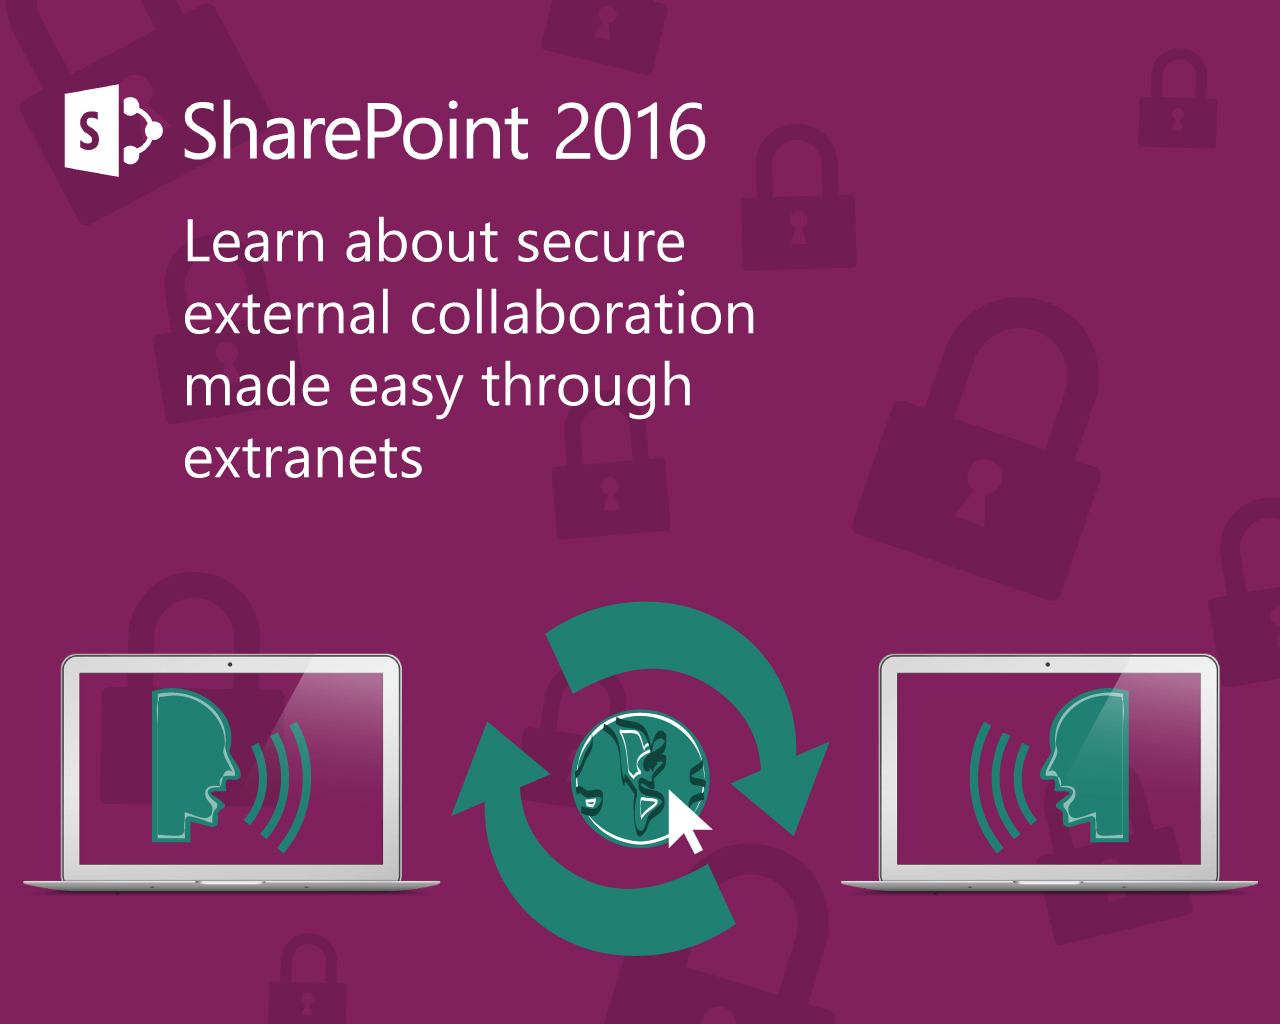 Extranets in SharePoint 2016